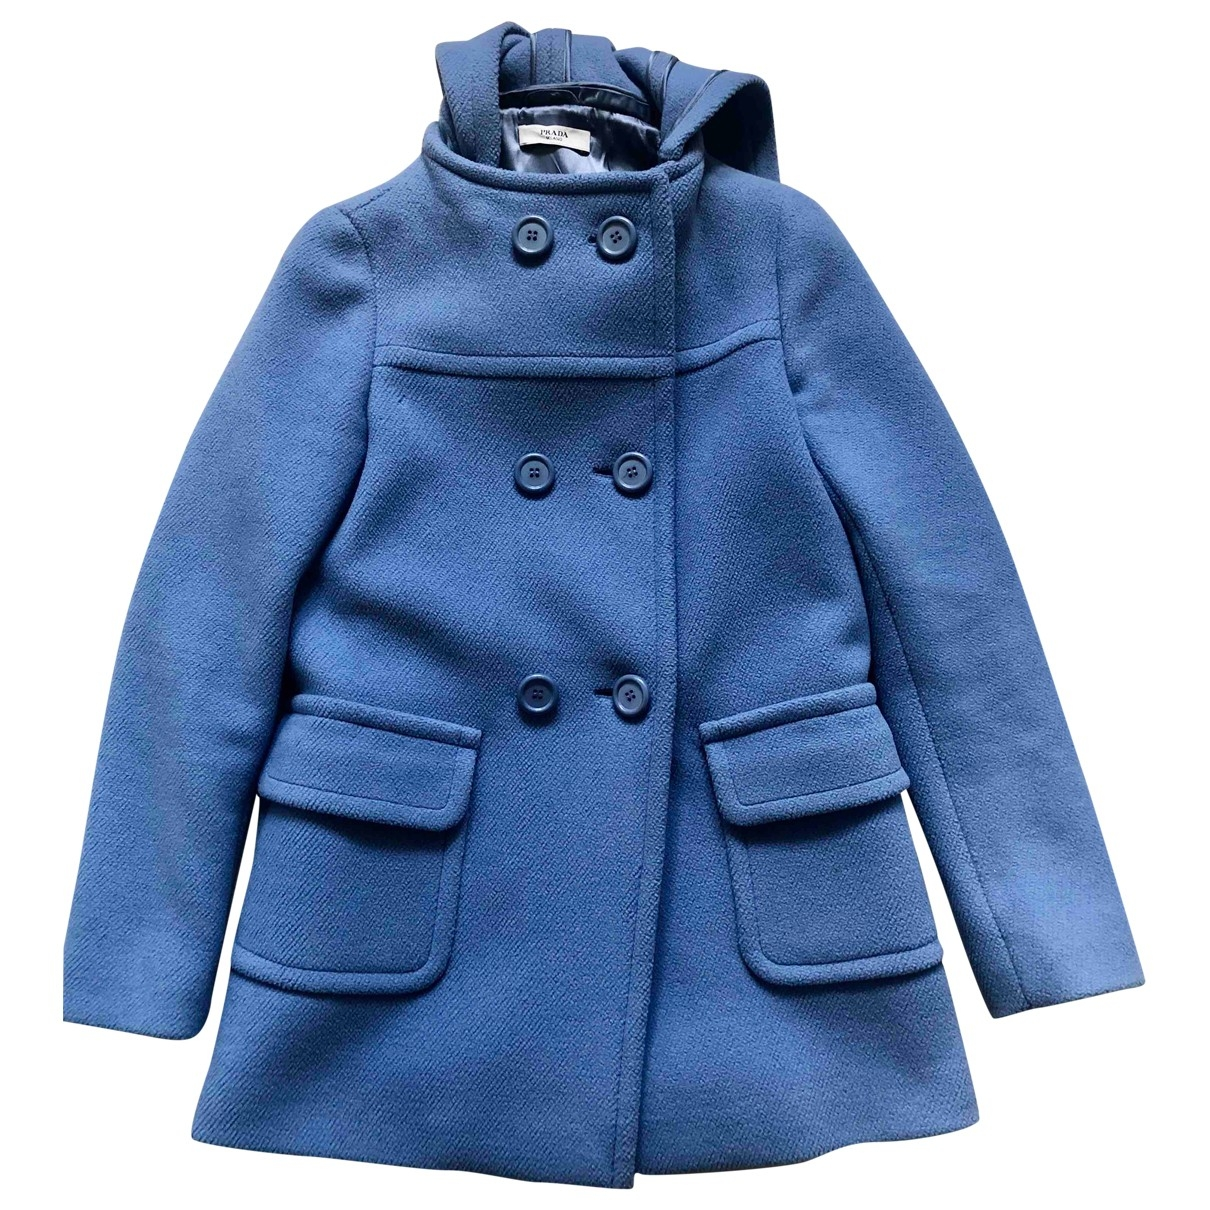 Prada \N Turquoise Wool coat for Women 38 IT